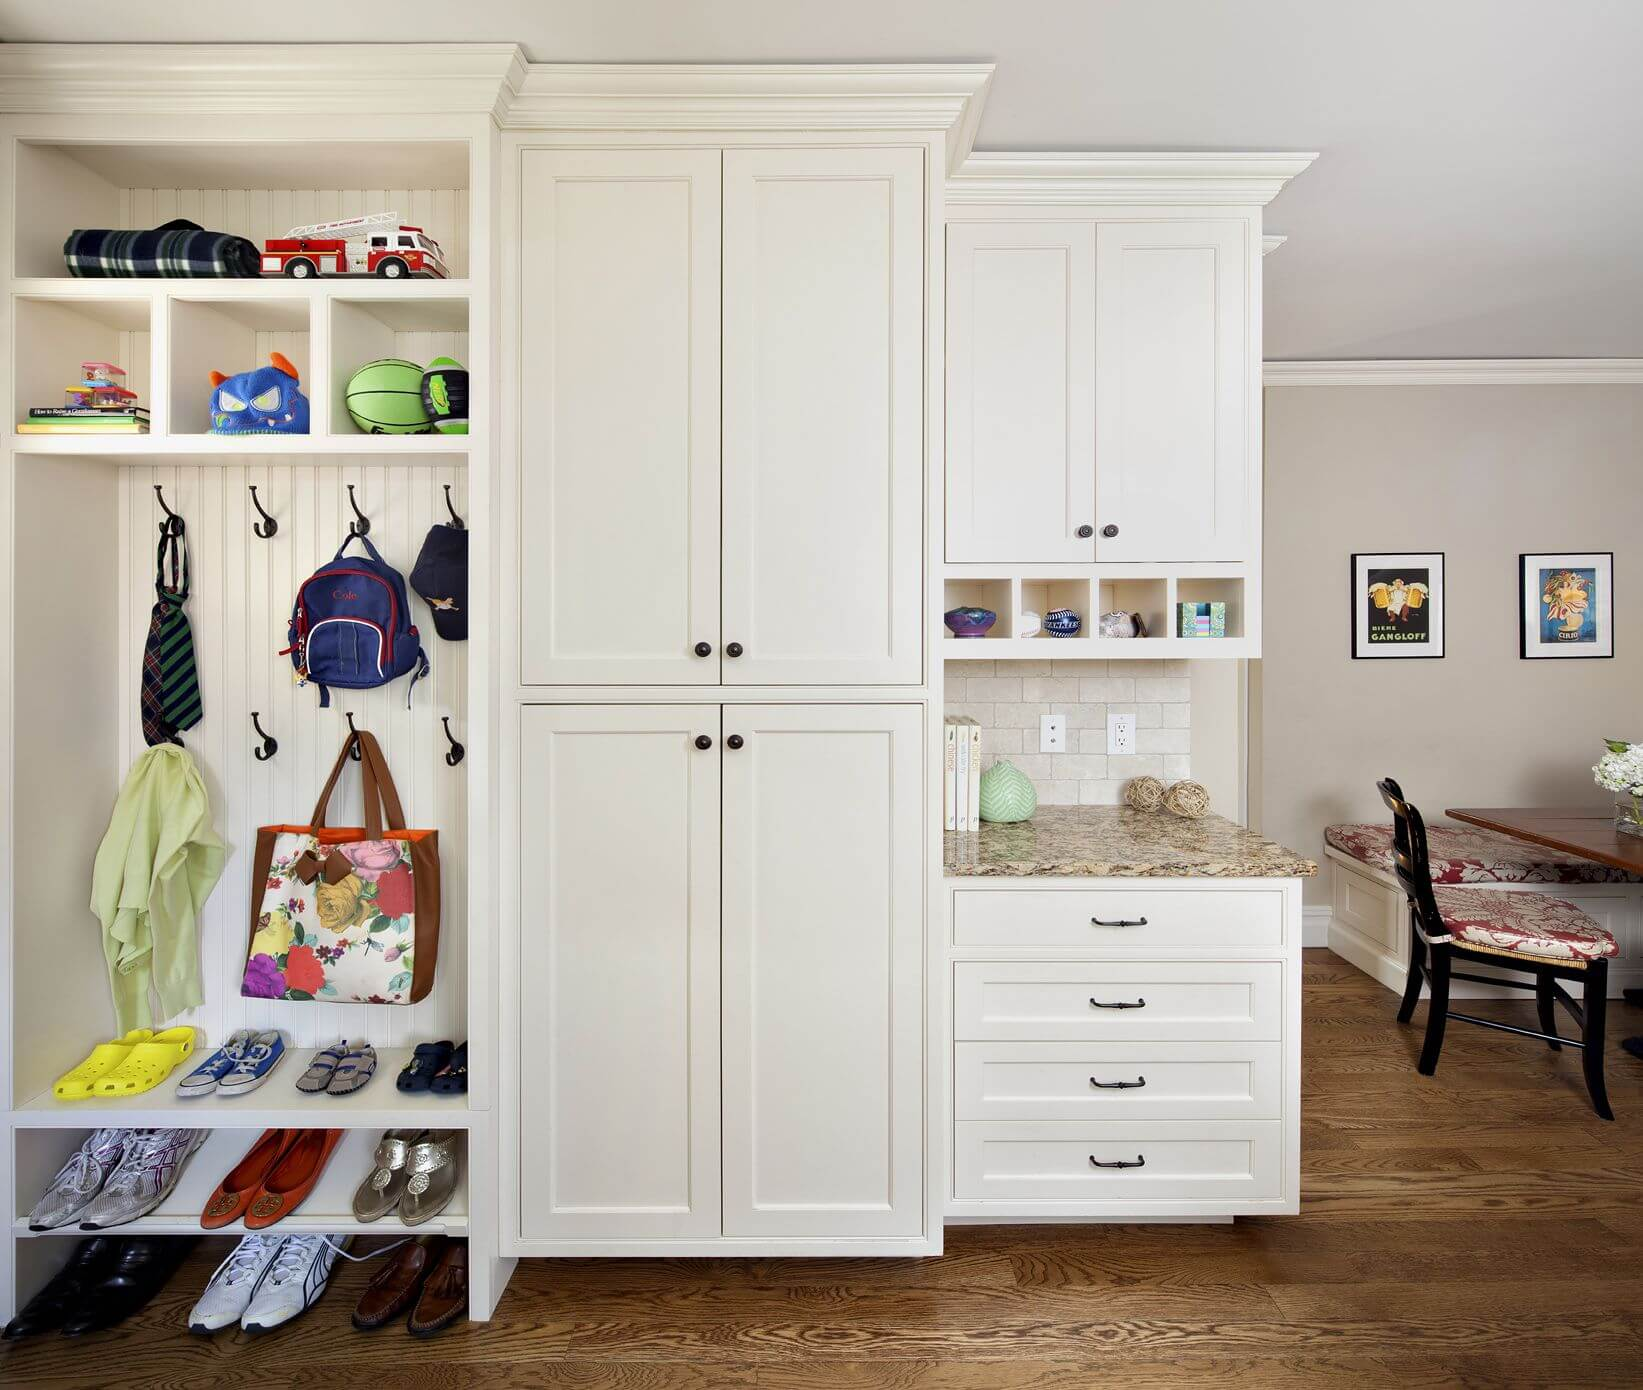 22 incredible mudroom ideas with storage lockers benches for Home zone designs